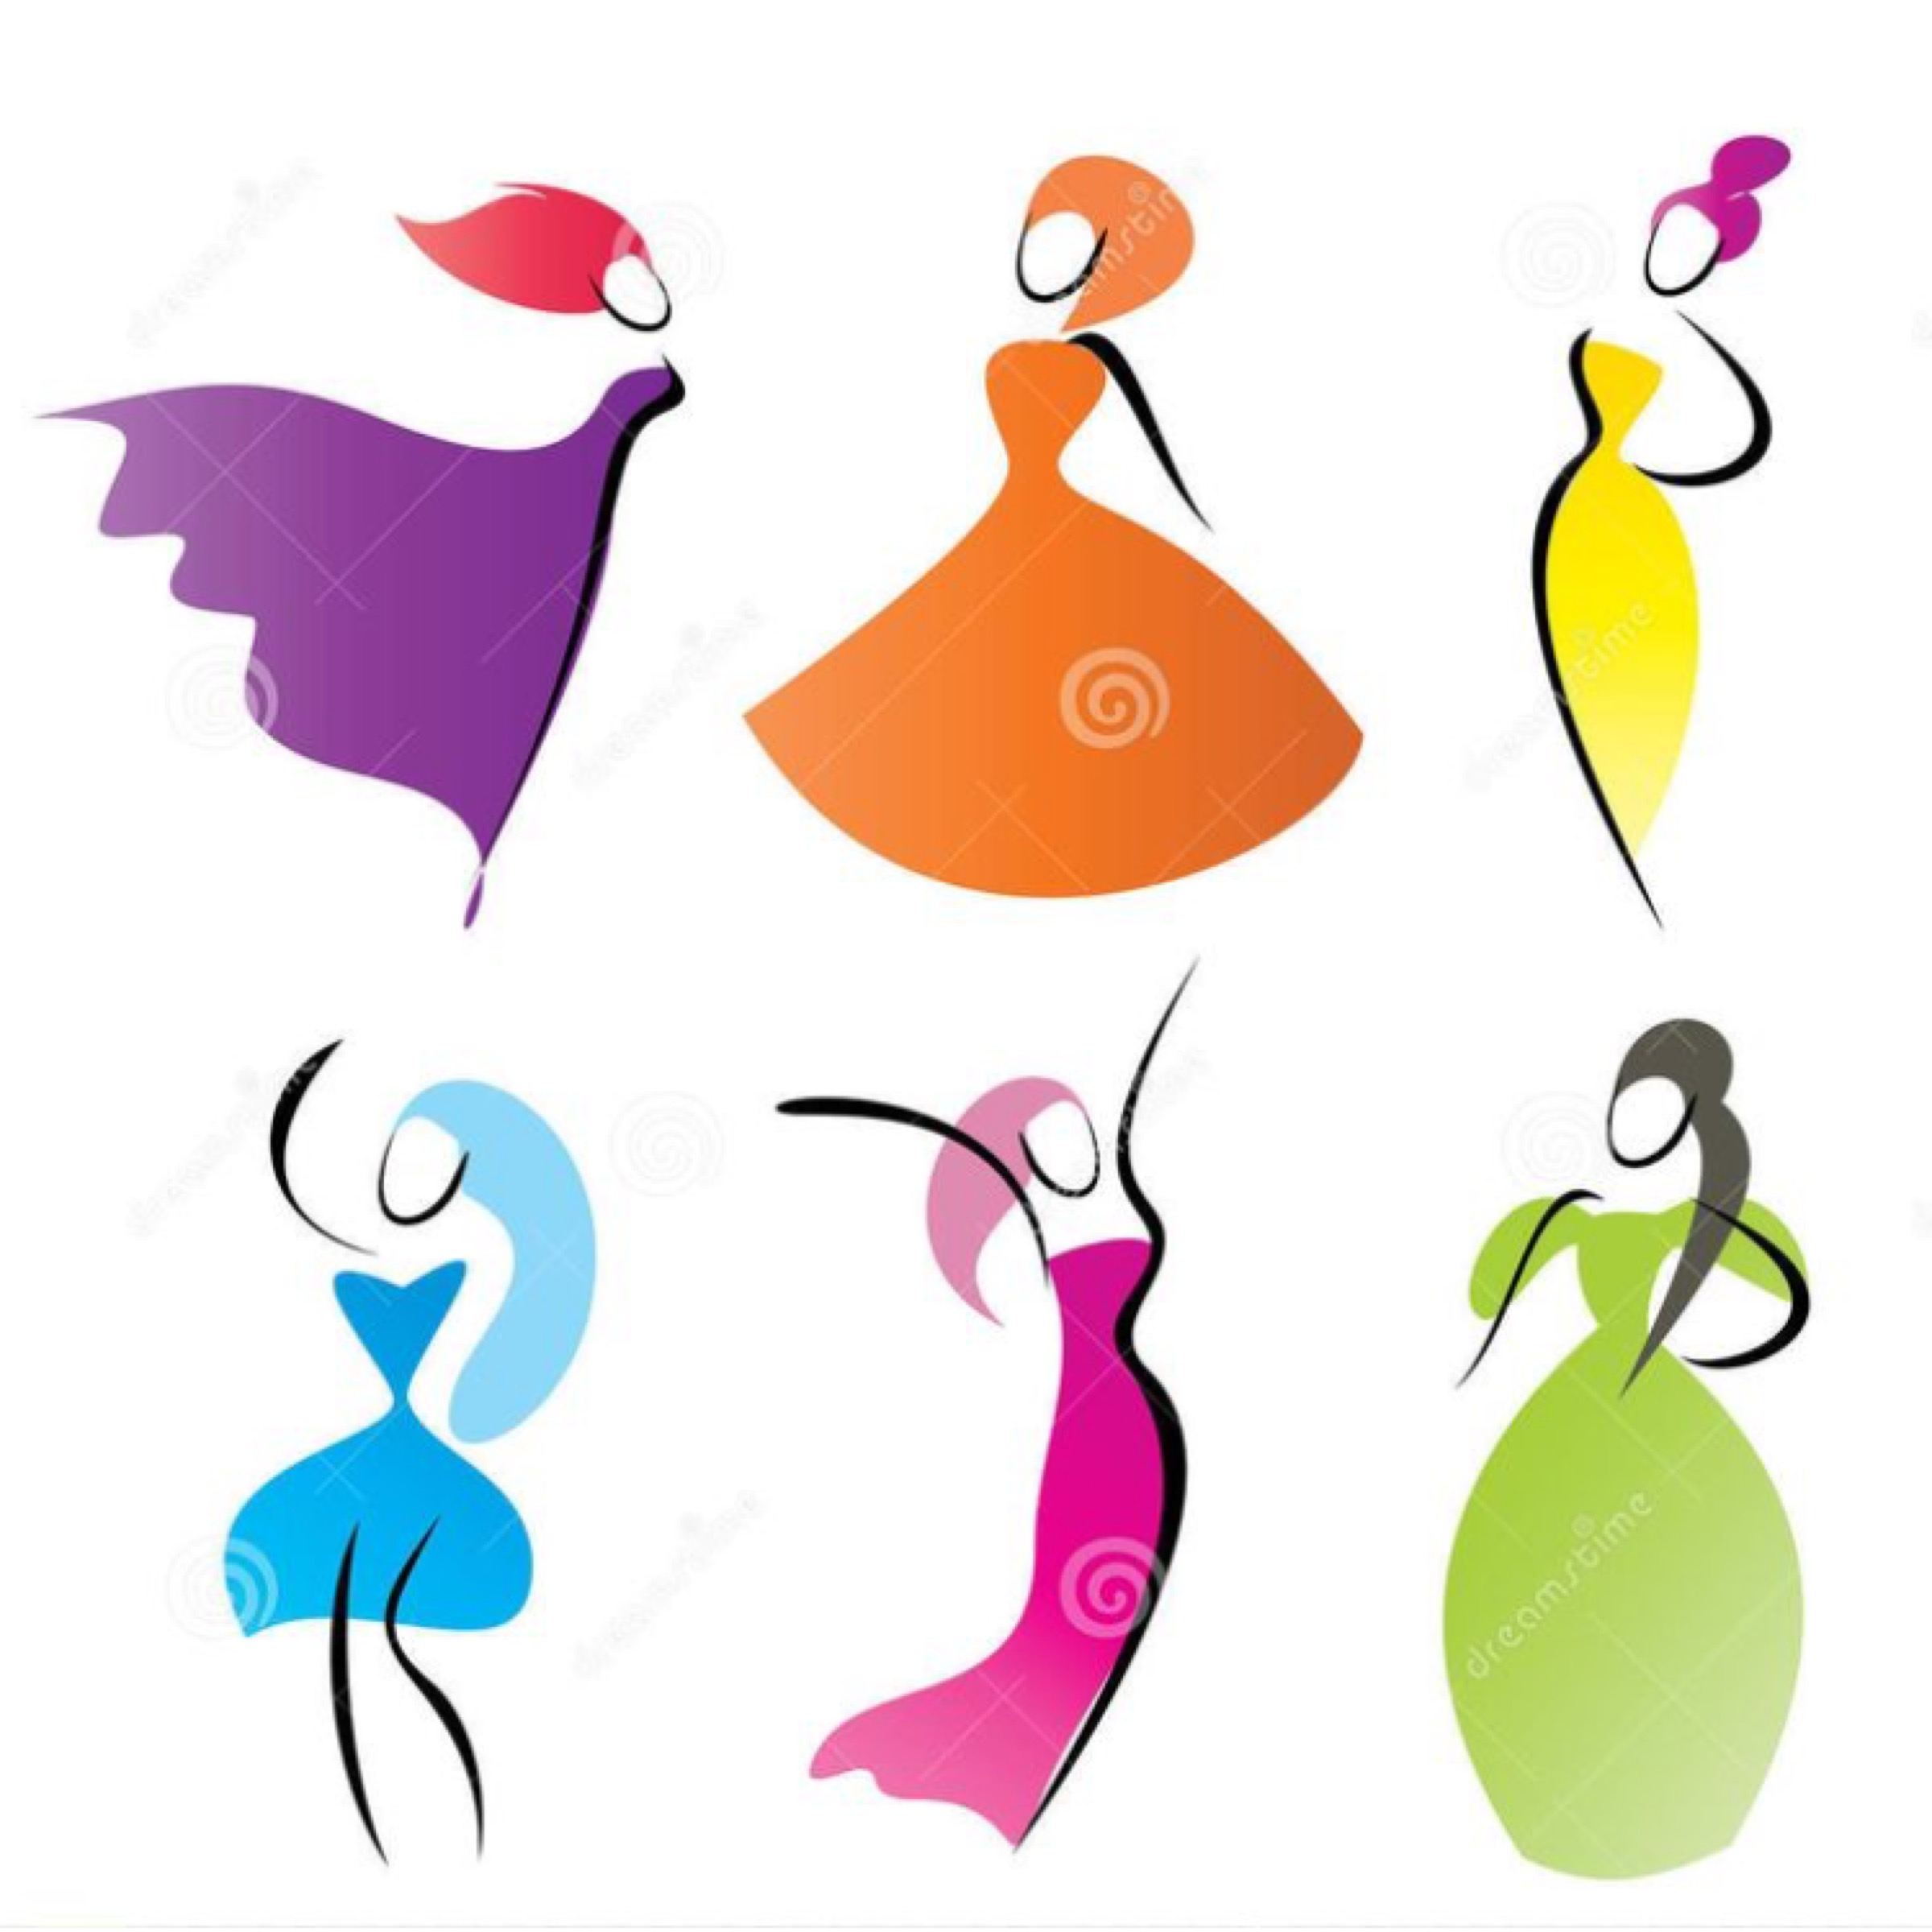 Women-s empowerment clipart clip free library SheSheLDN Women\'s Empowerment Network | Startup Fundraising ... clip free library